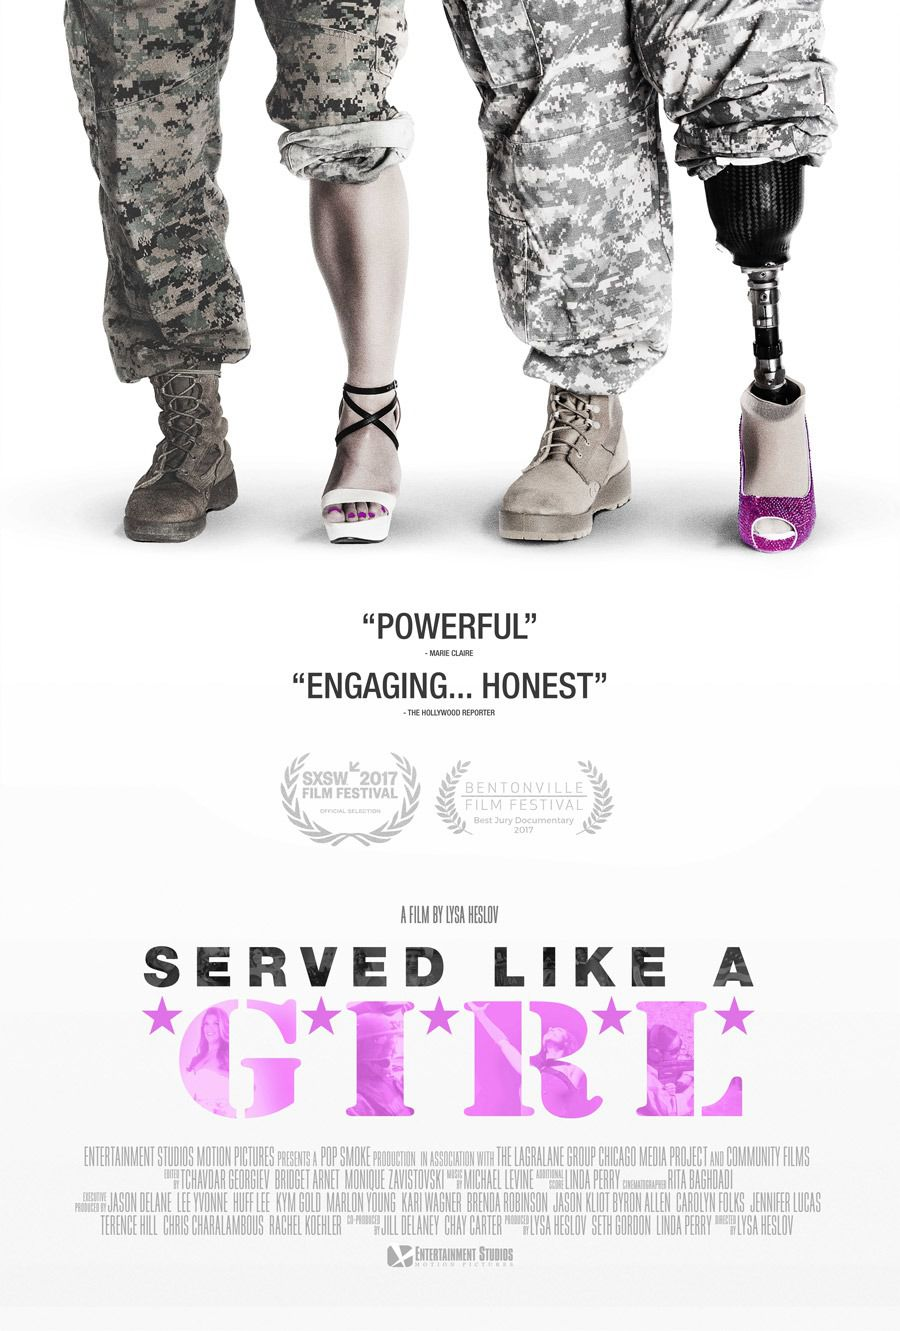 Served like a girl - docu film poster